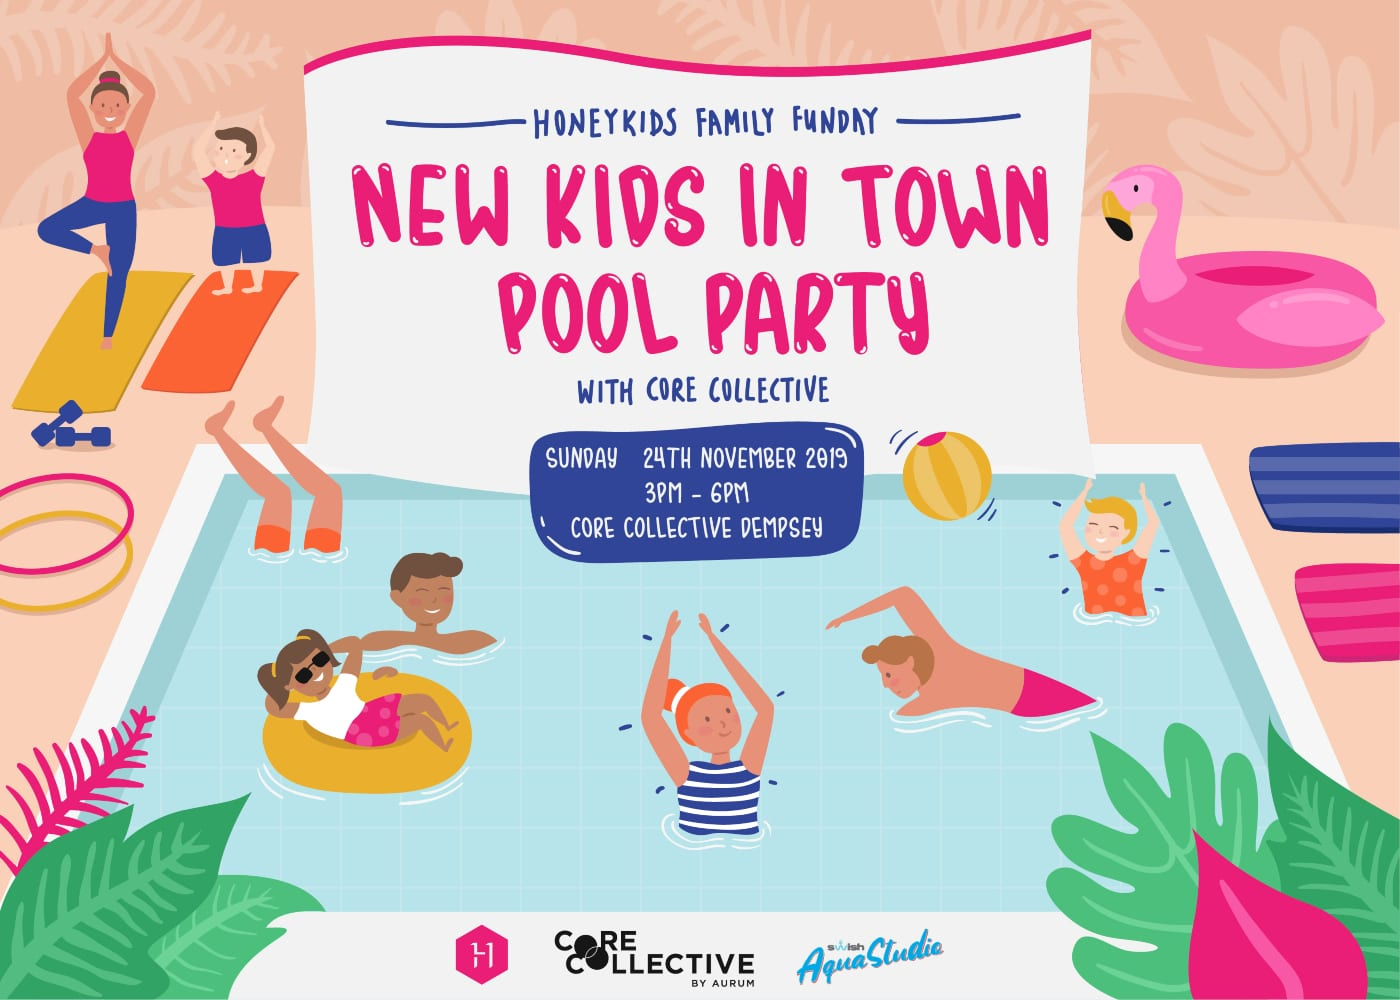 new kids in town honeykids asia pool party